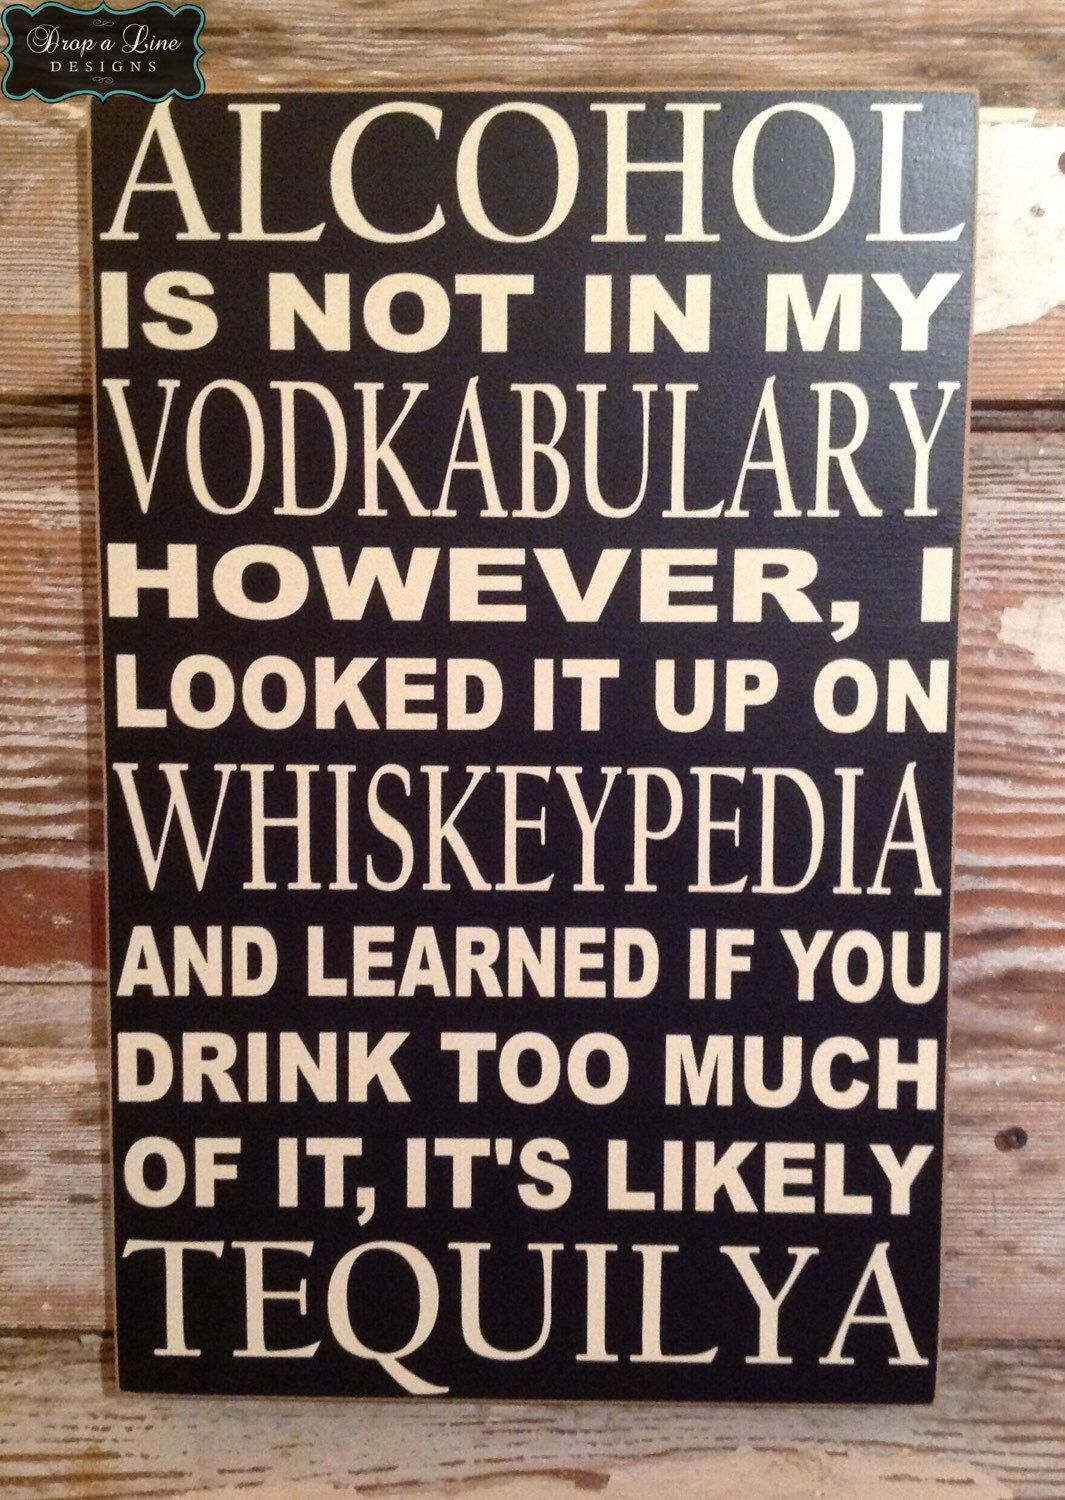 Alcohol Is Not In My Vodkacabulary However, I Looked It Up